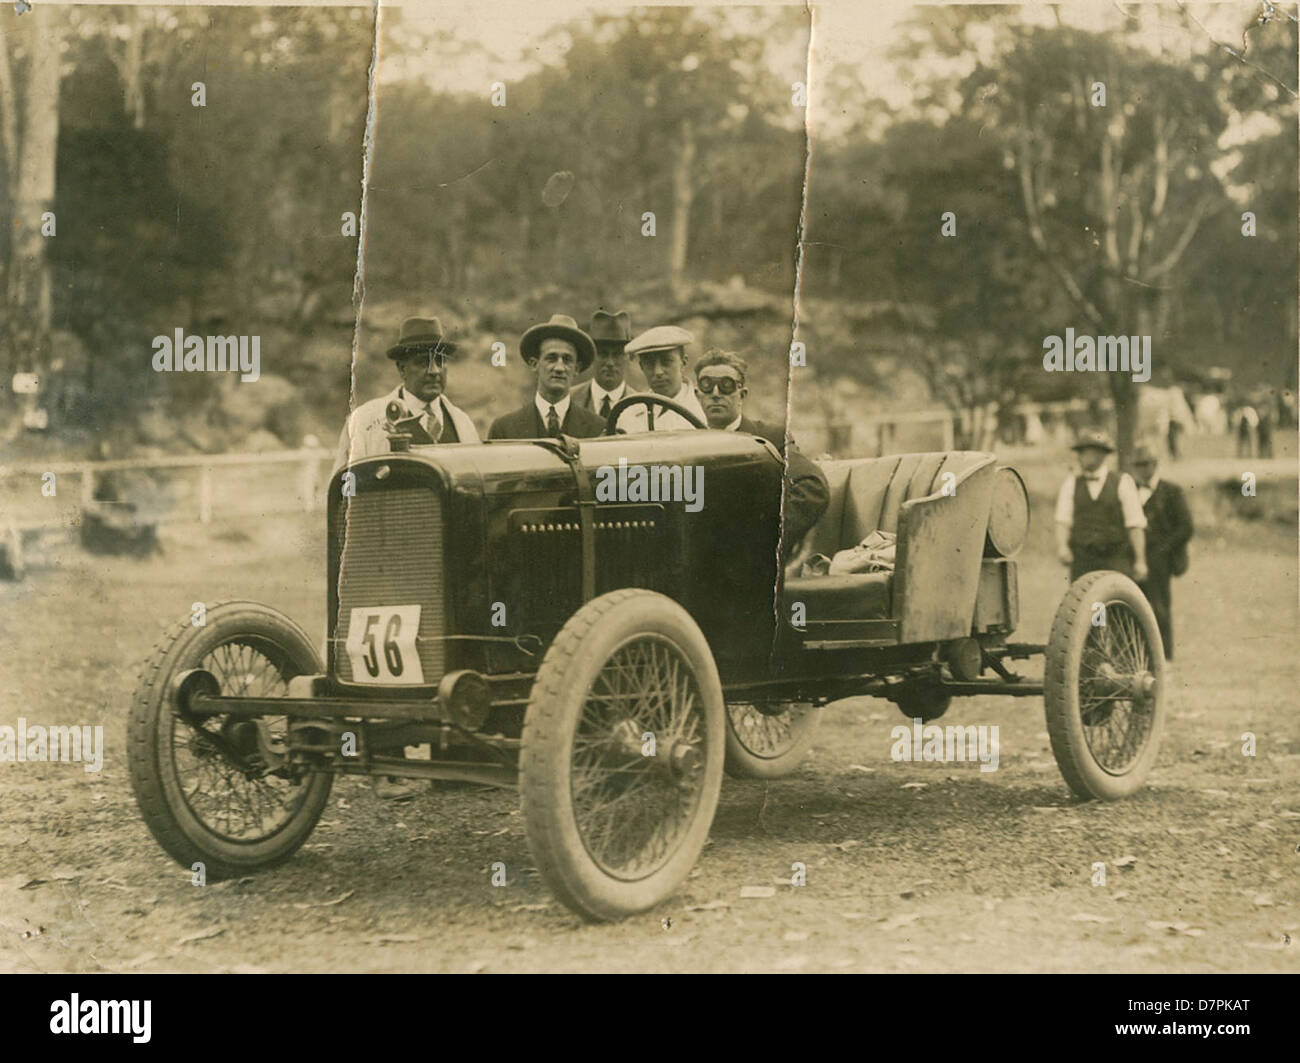 Don Harkness at the wheel of modified Overland car at race meeting - Stock Image